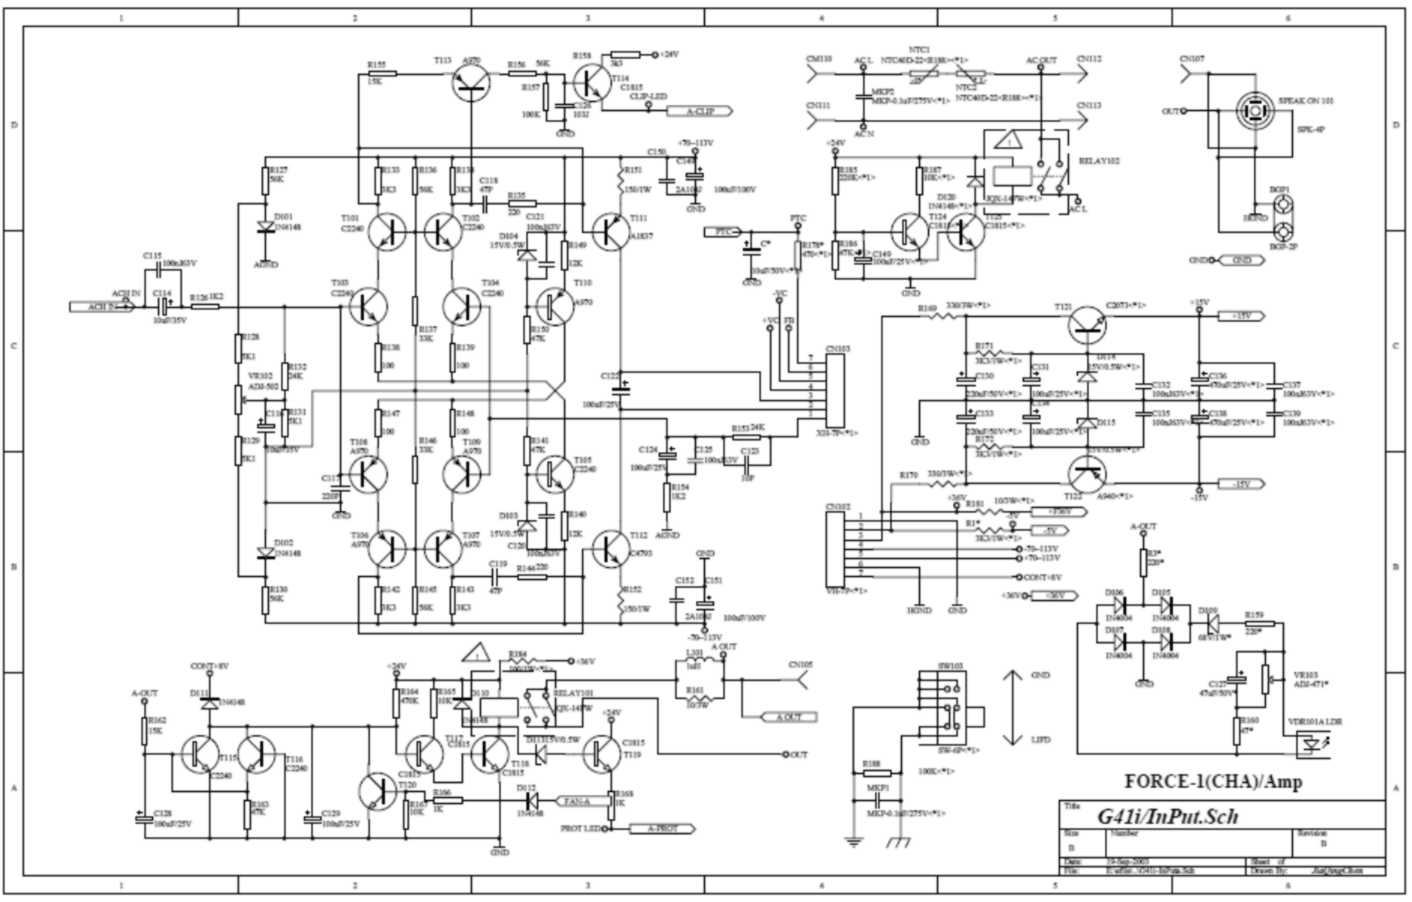 behringer power amplifier schematic auto electrical wiring diagram skema audio power amplifier skema ampli [ 1412 x 902 Pixel ]